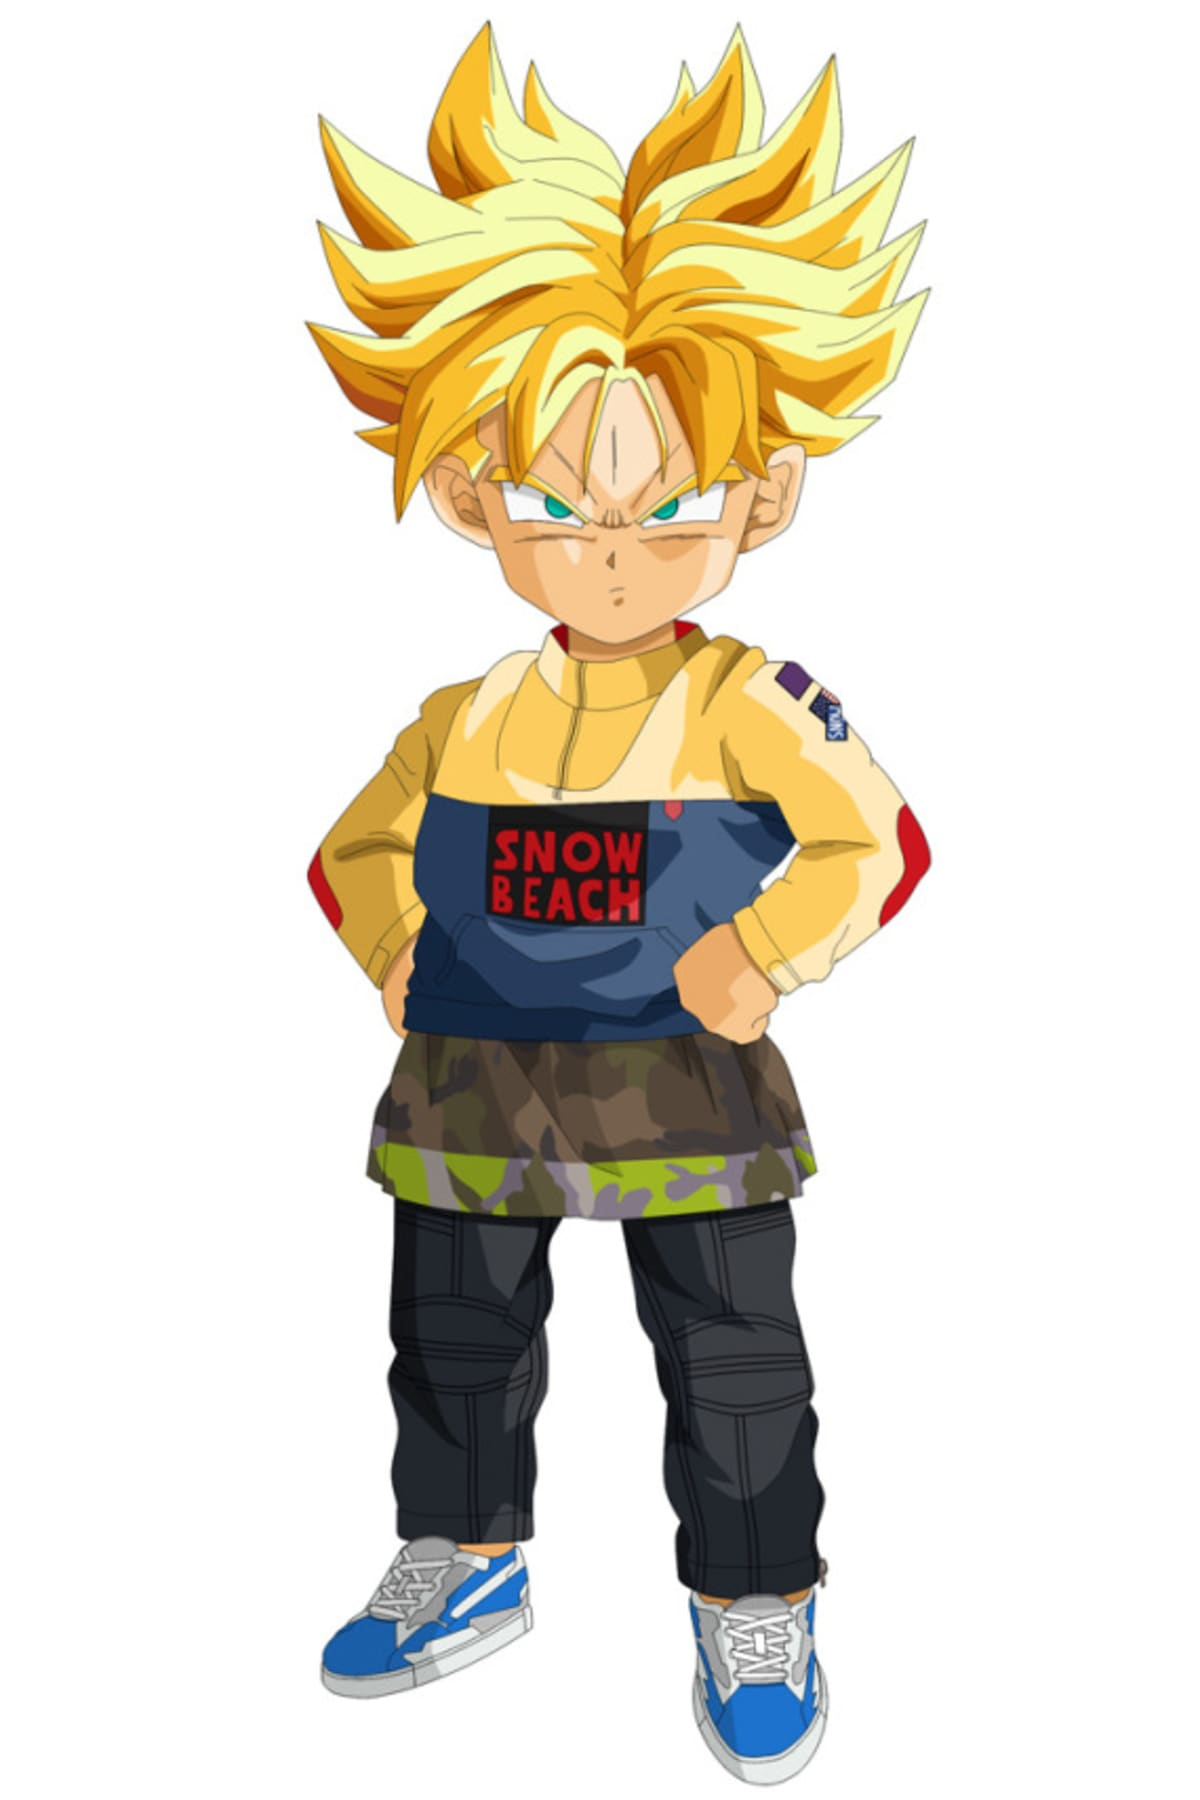 hmn alns dresses up dragon ball z characters in more streetwear